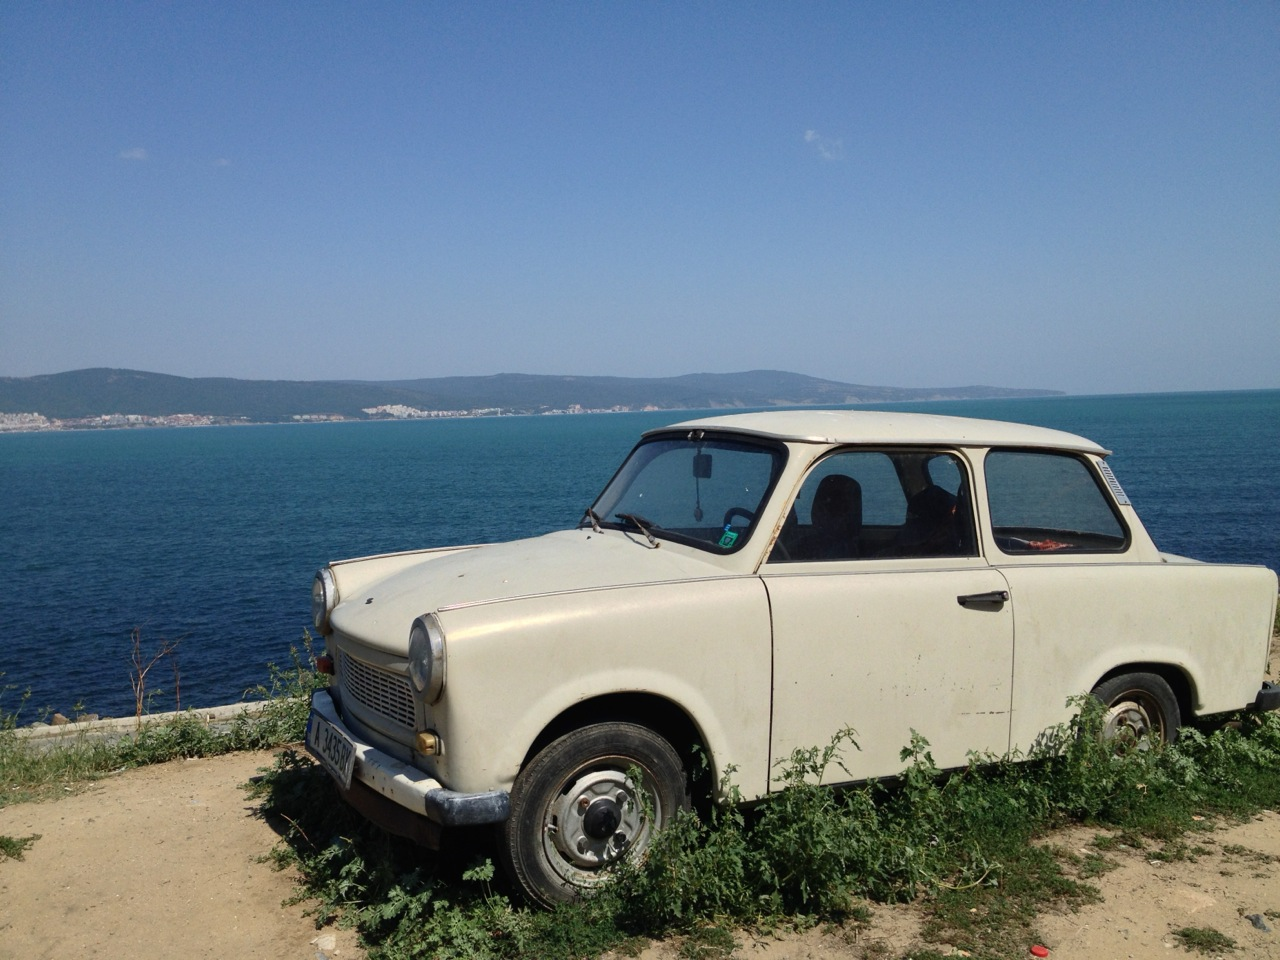 This Trabant was as popular as ruins